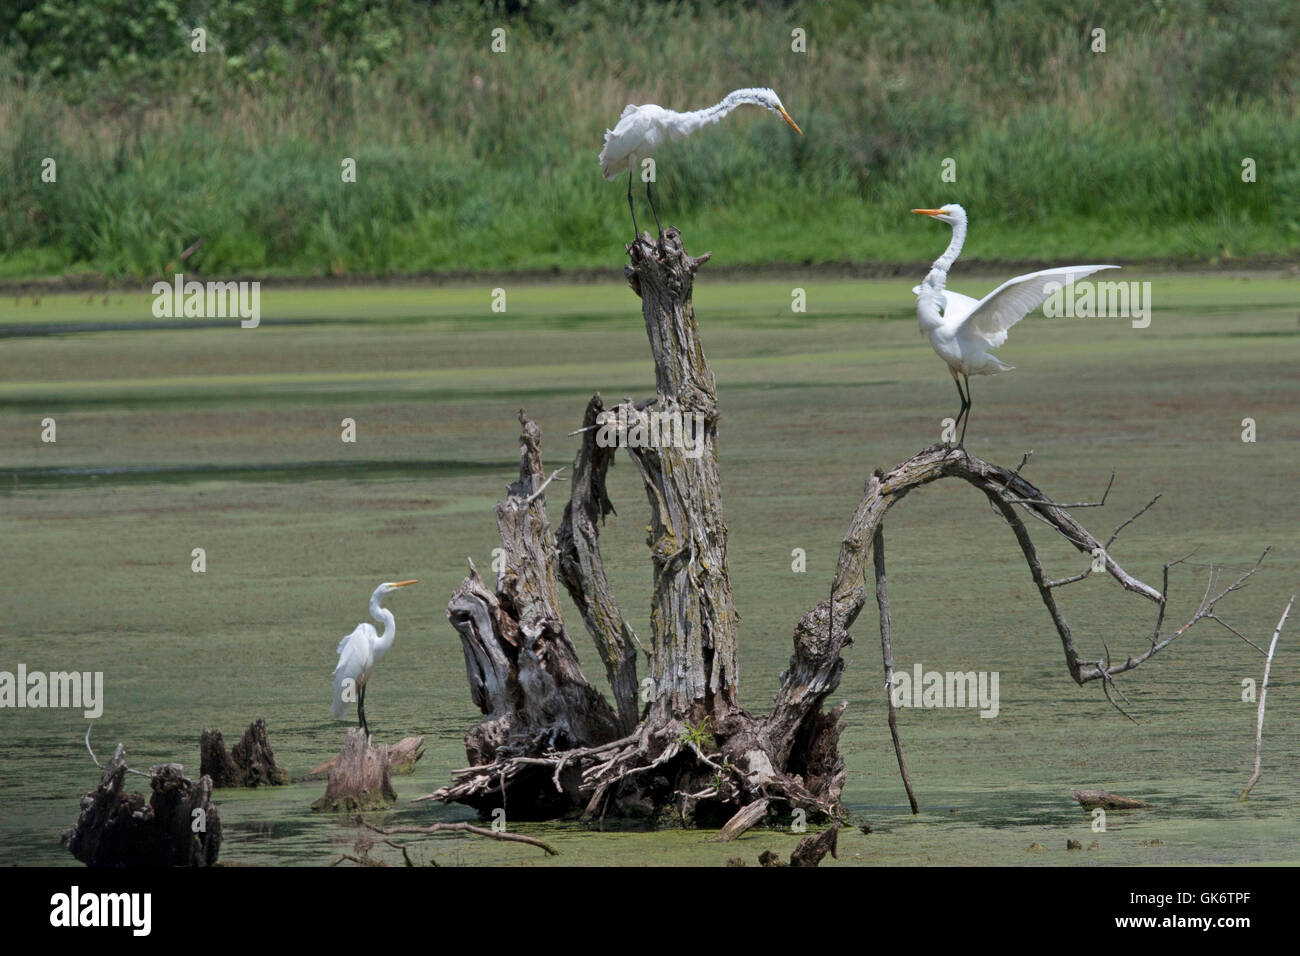 Two great white egrets argue over territory as third egret looks on - Stock Image